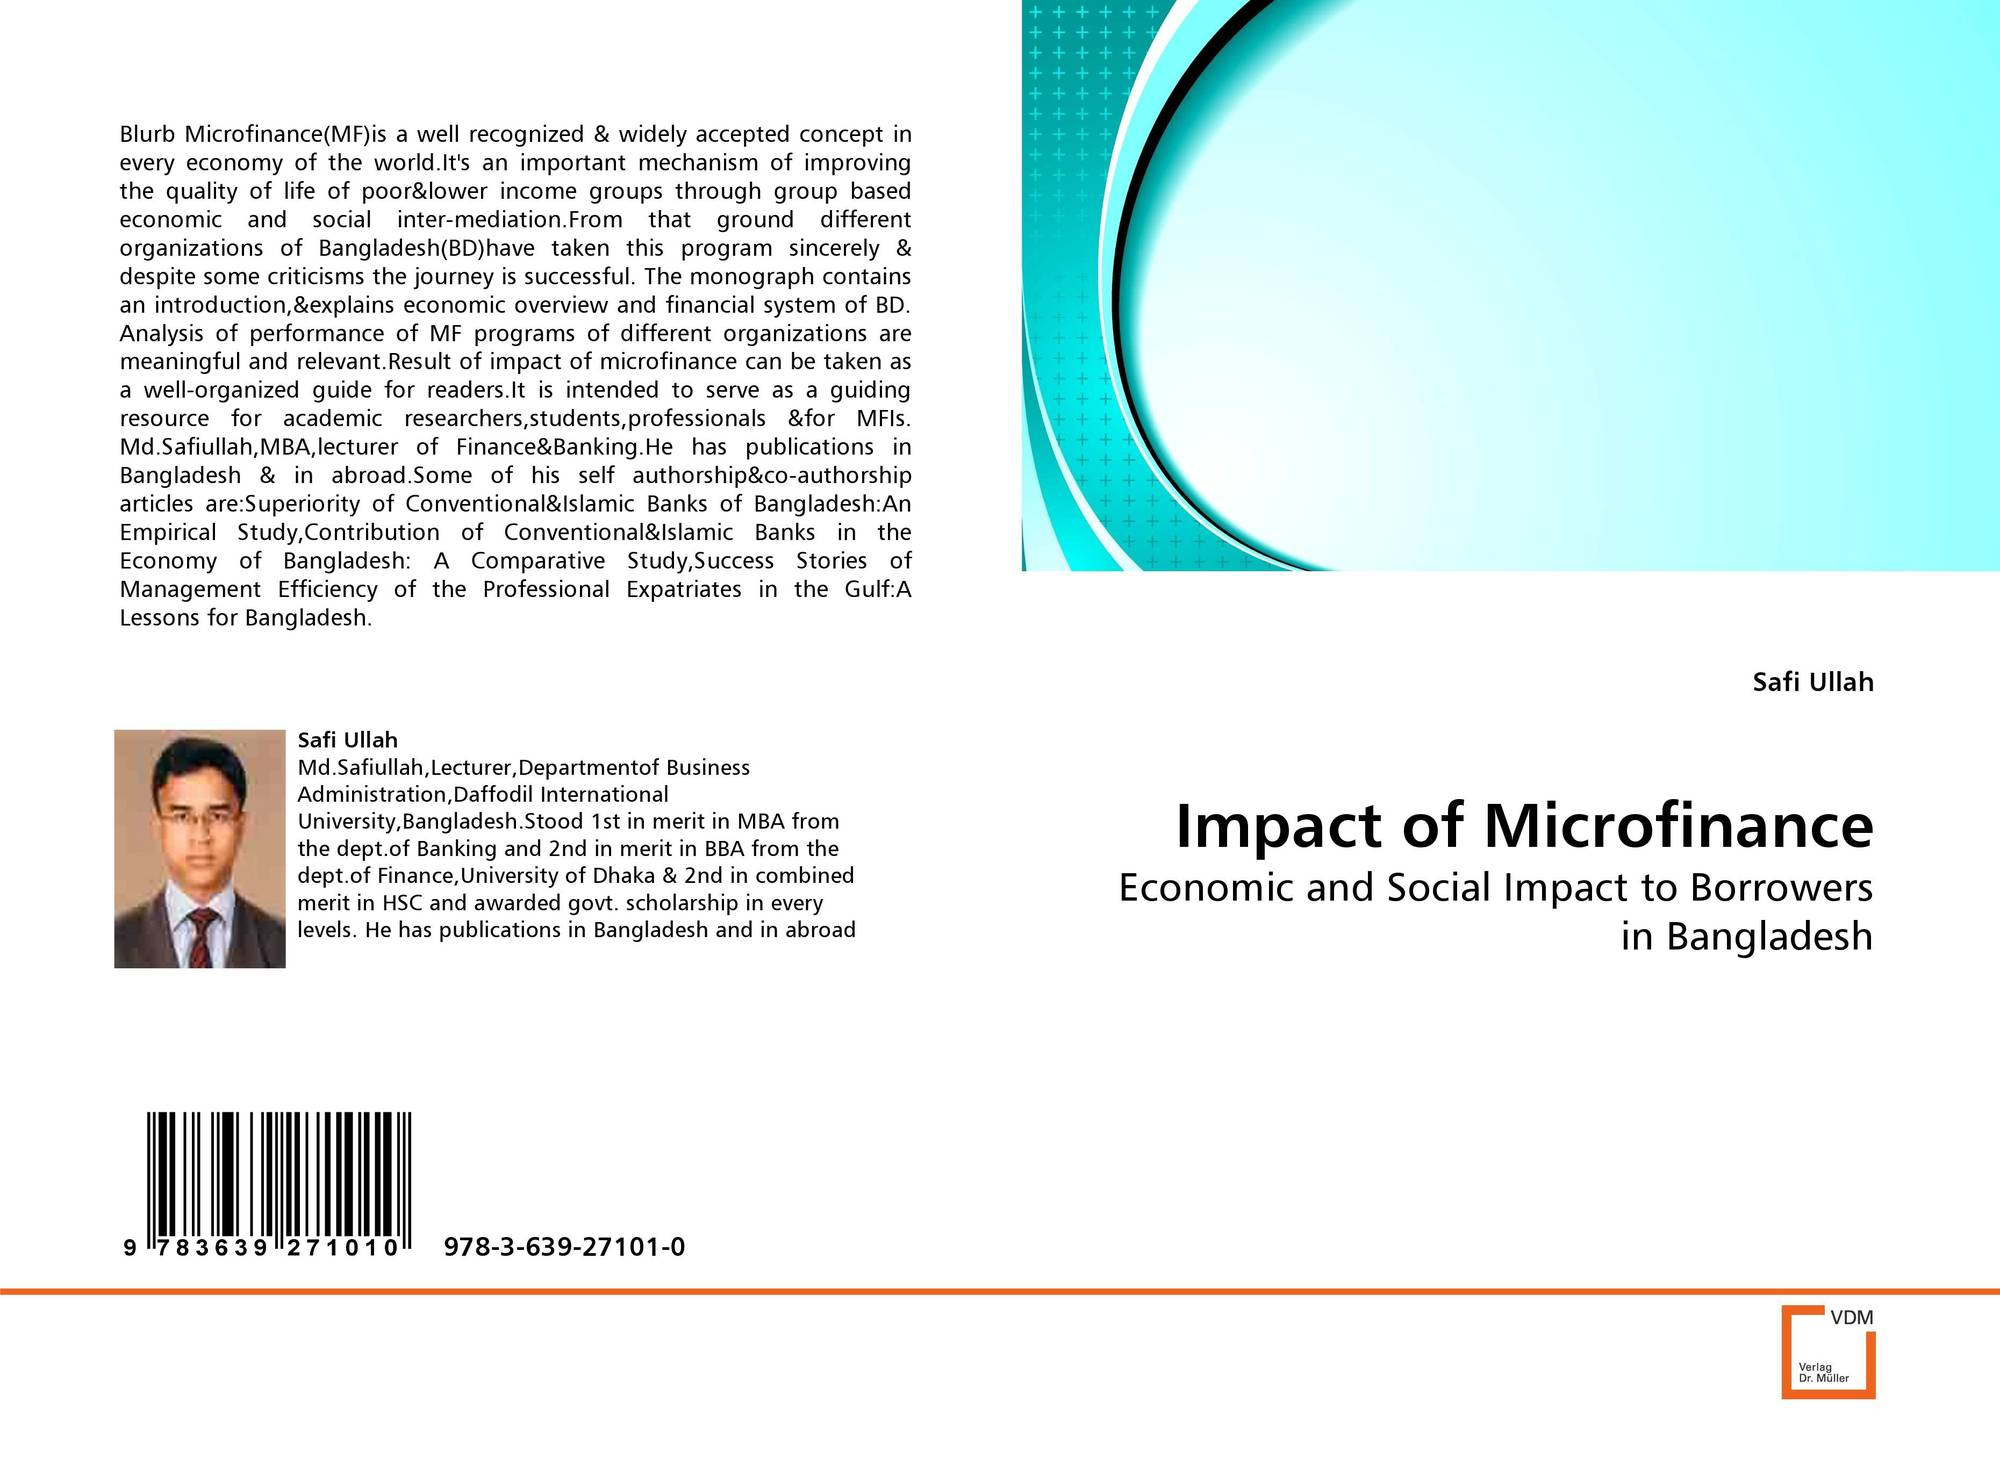 The impact of microfinance